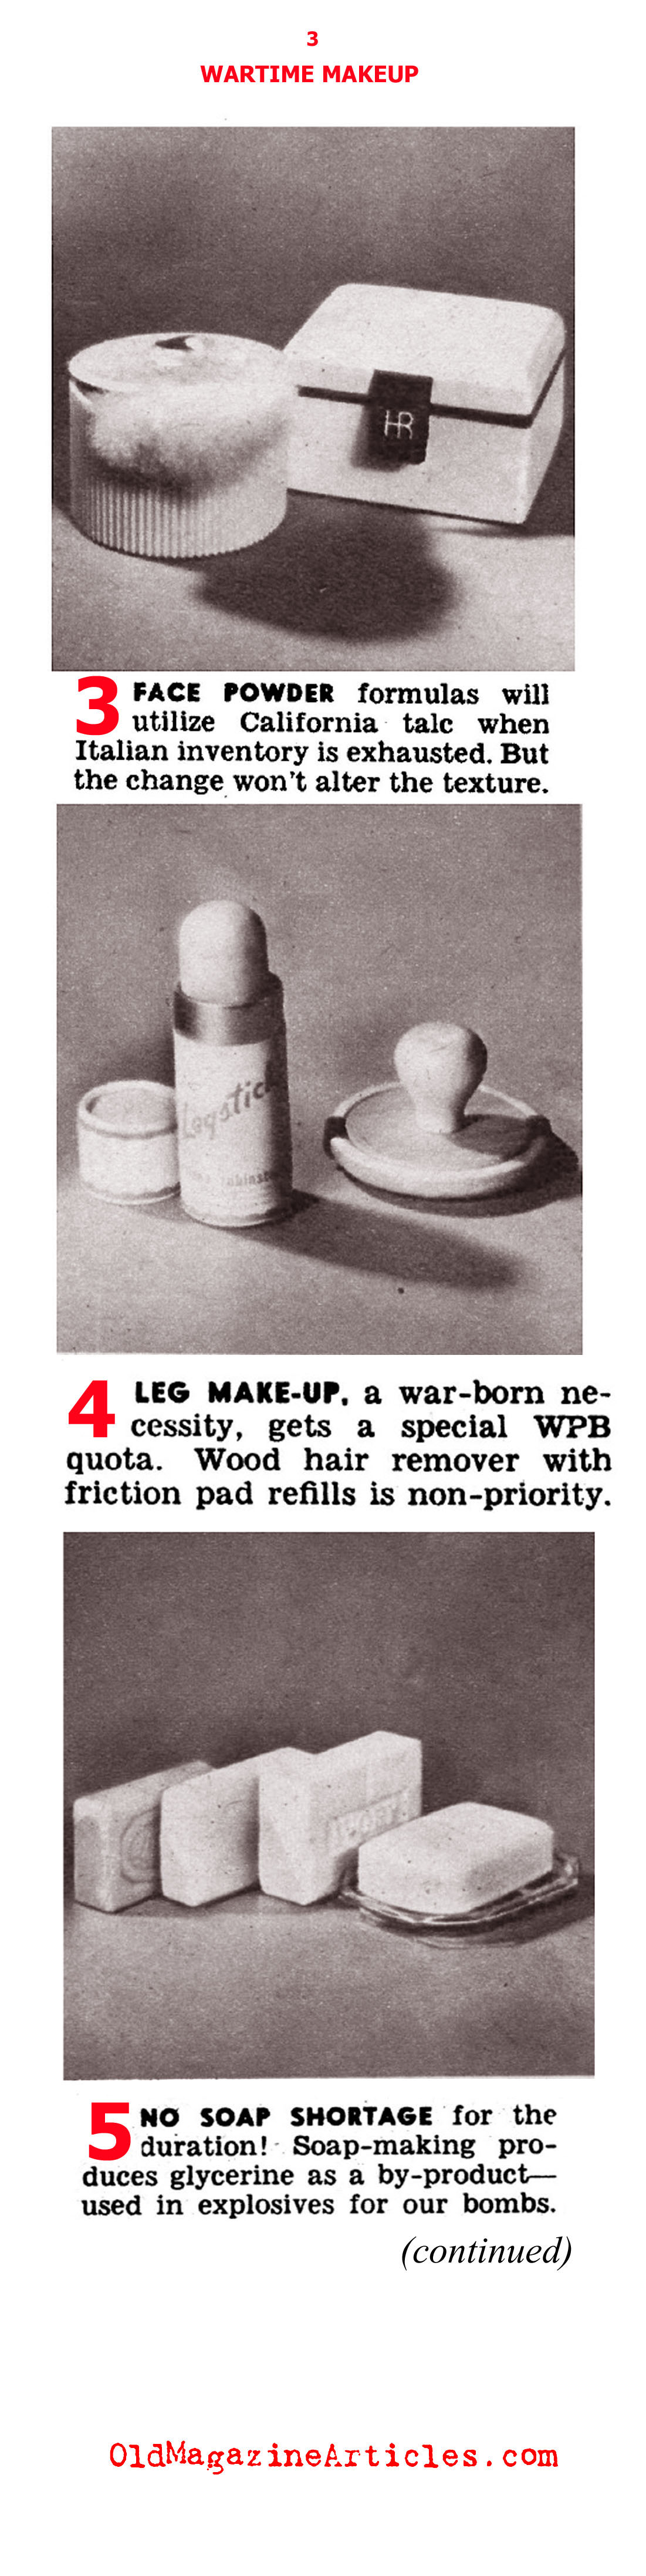 1940s Makeup and W.W. II (Click Magazine, 1942)